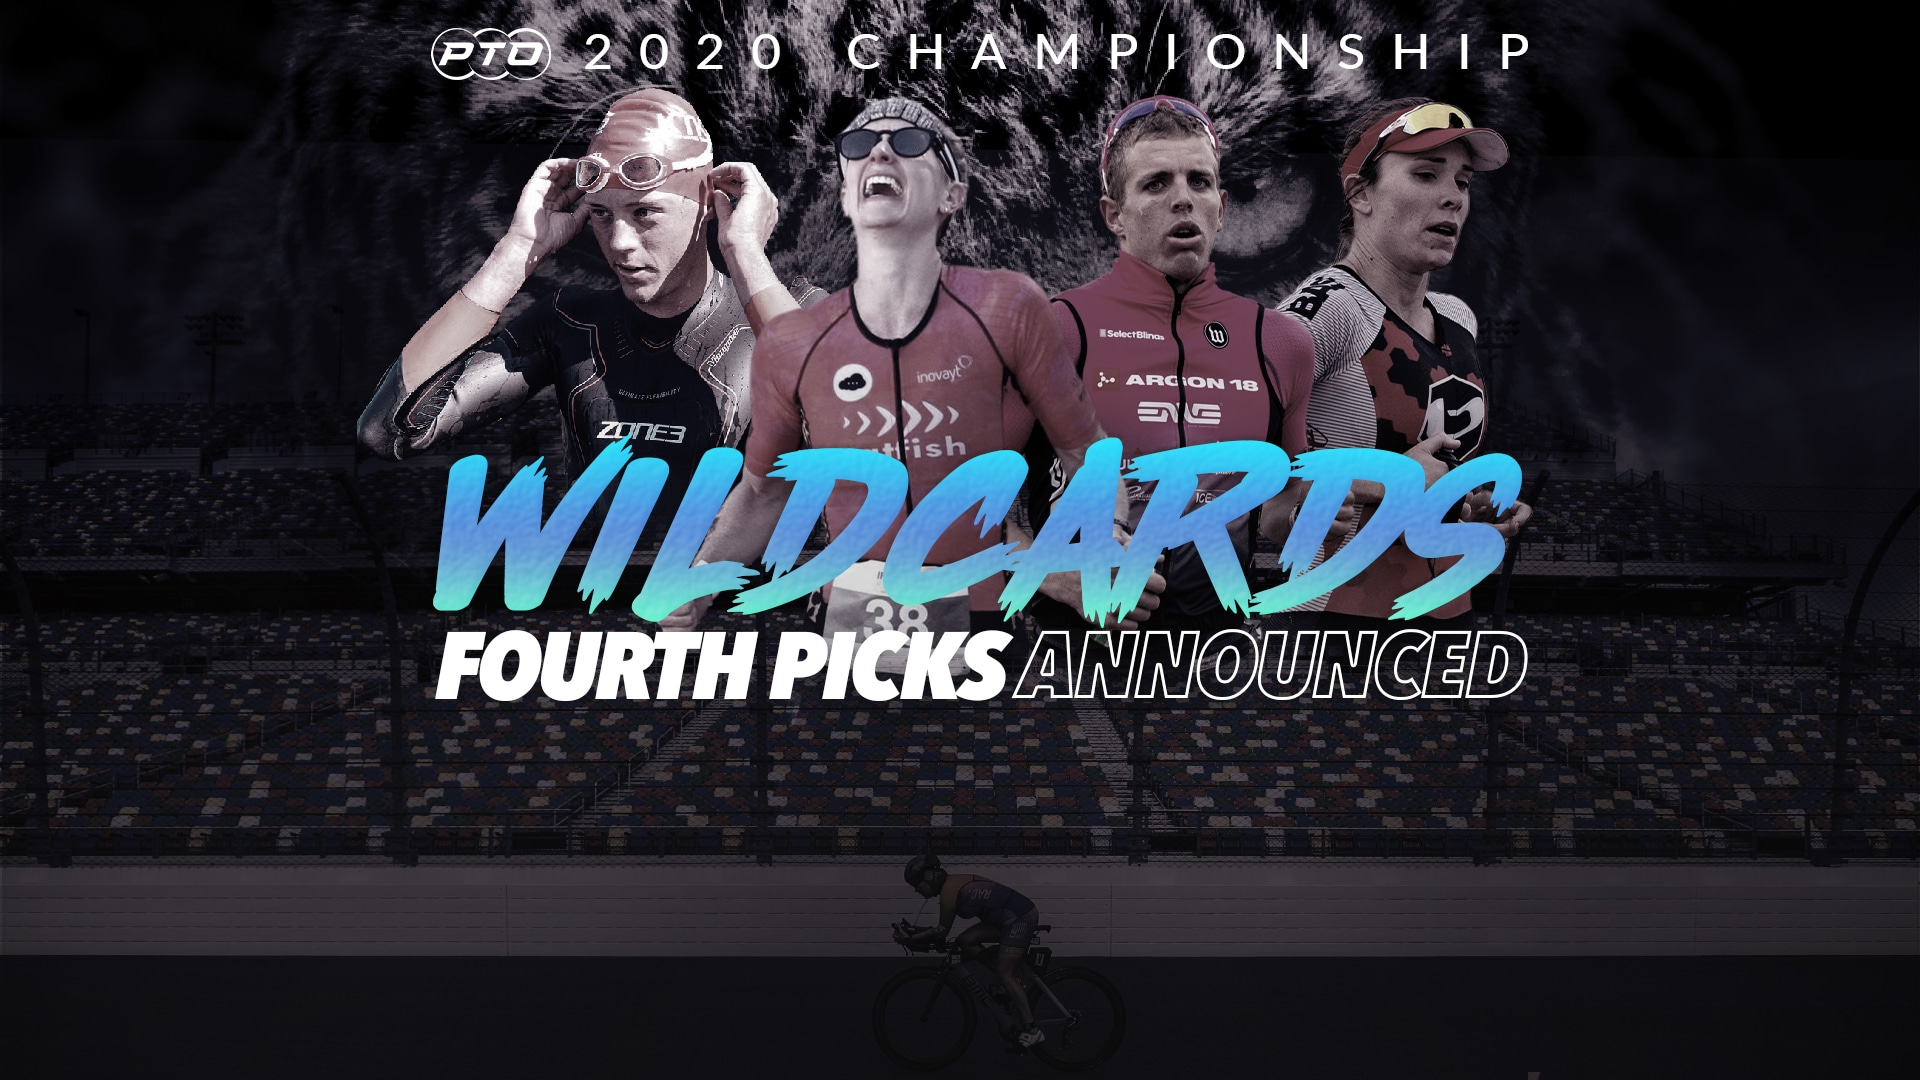 Rich promise and rich stories for latest PTO 2020 Championship wildcards